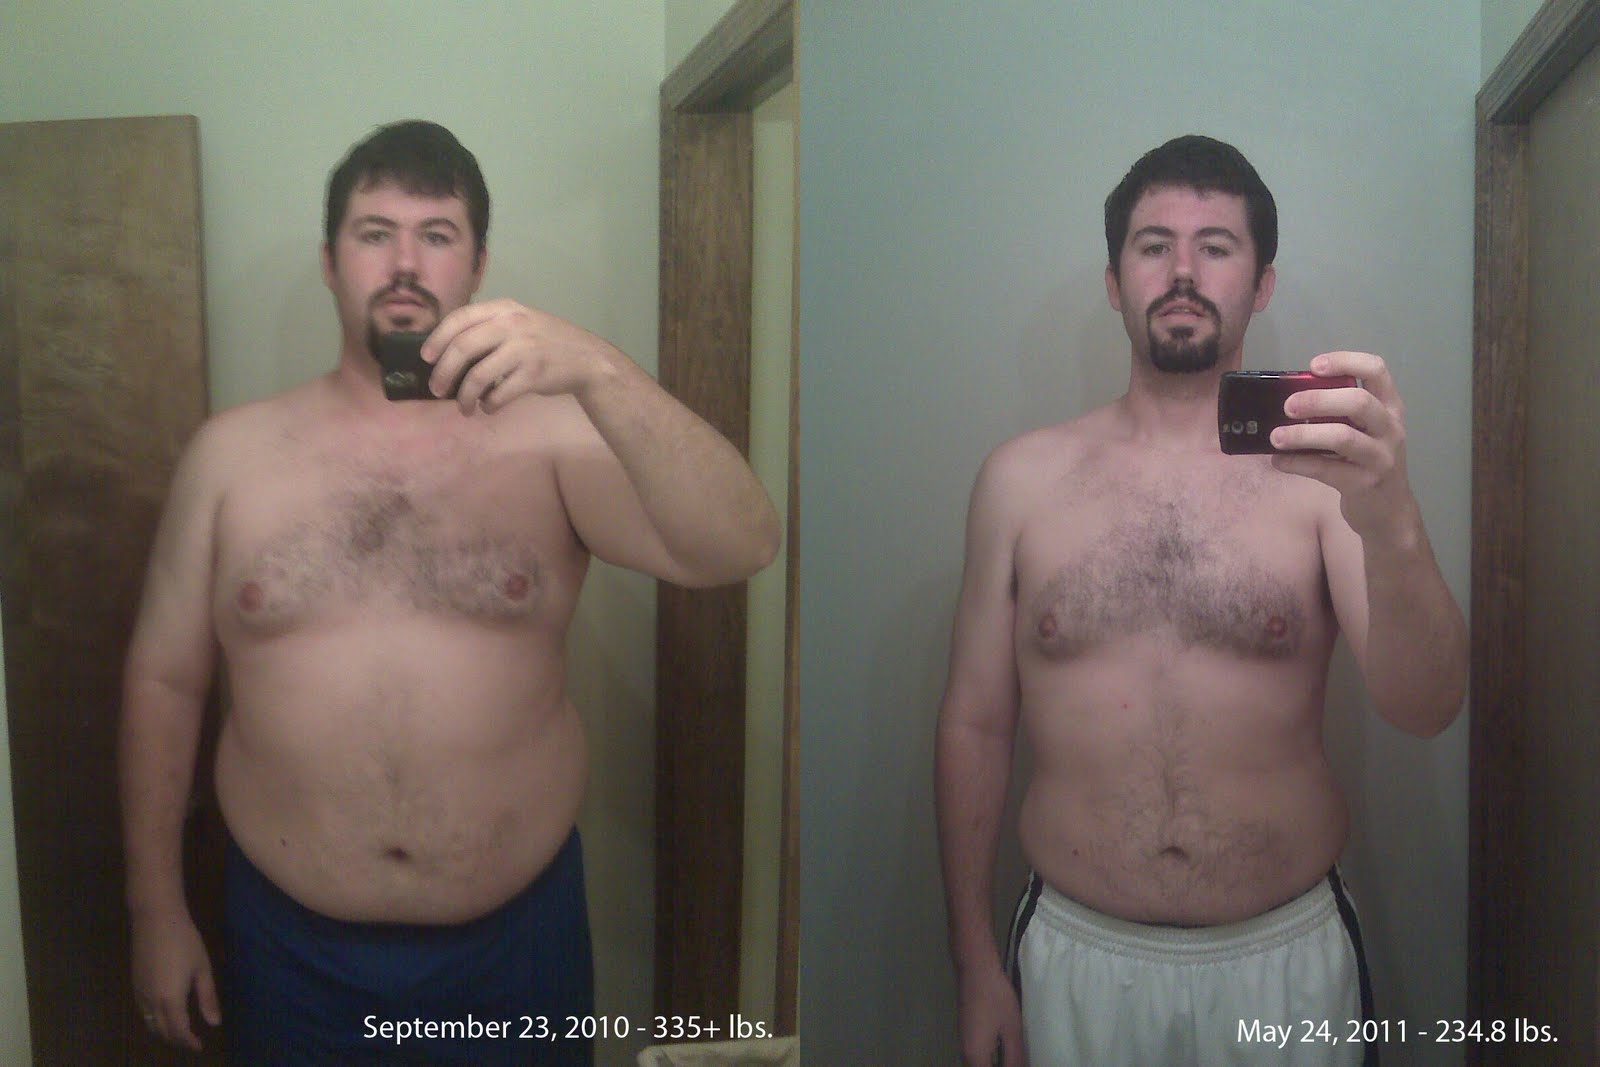 Lose 100 lbs in 4 months